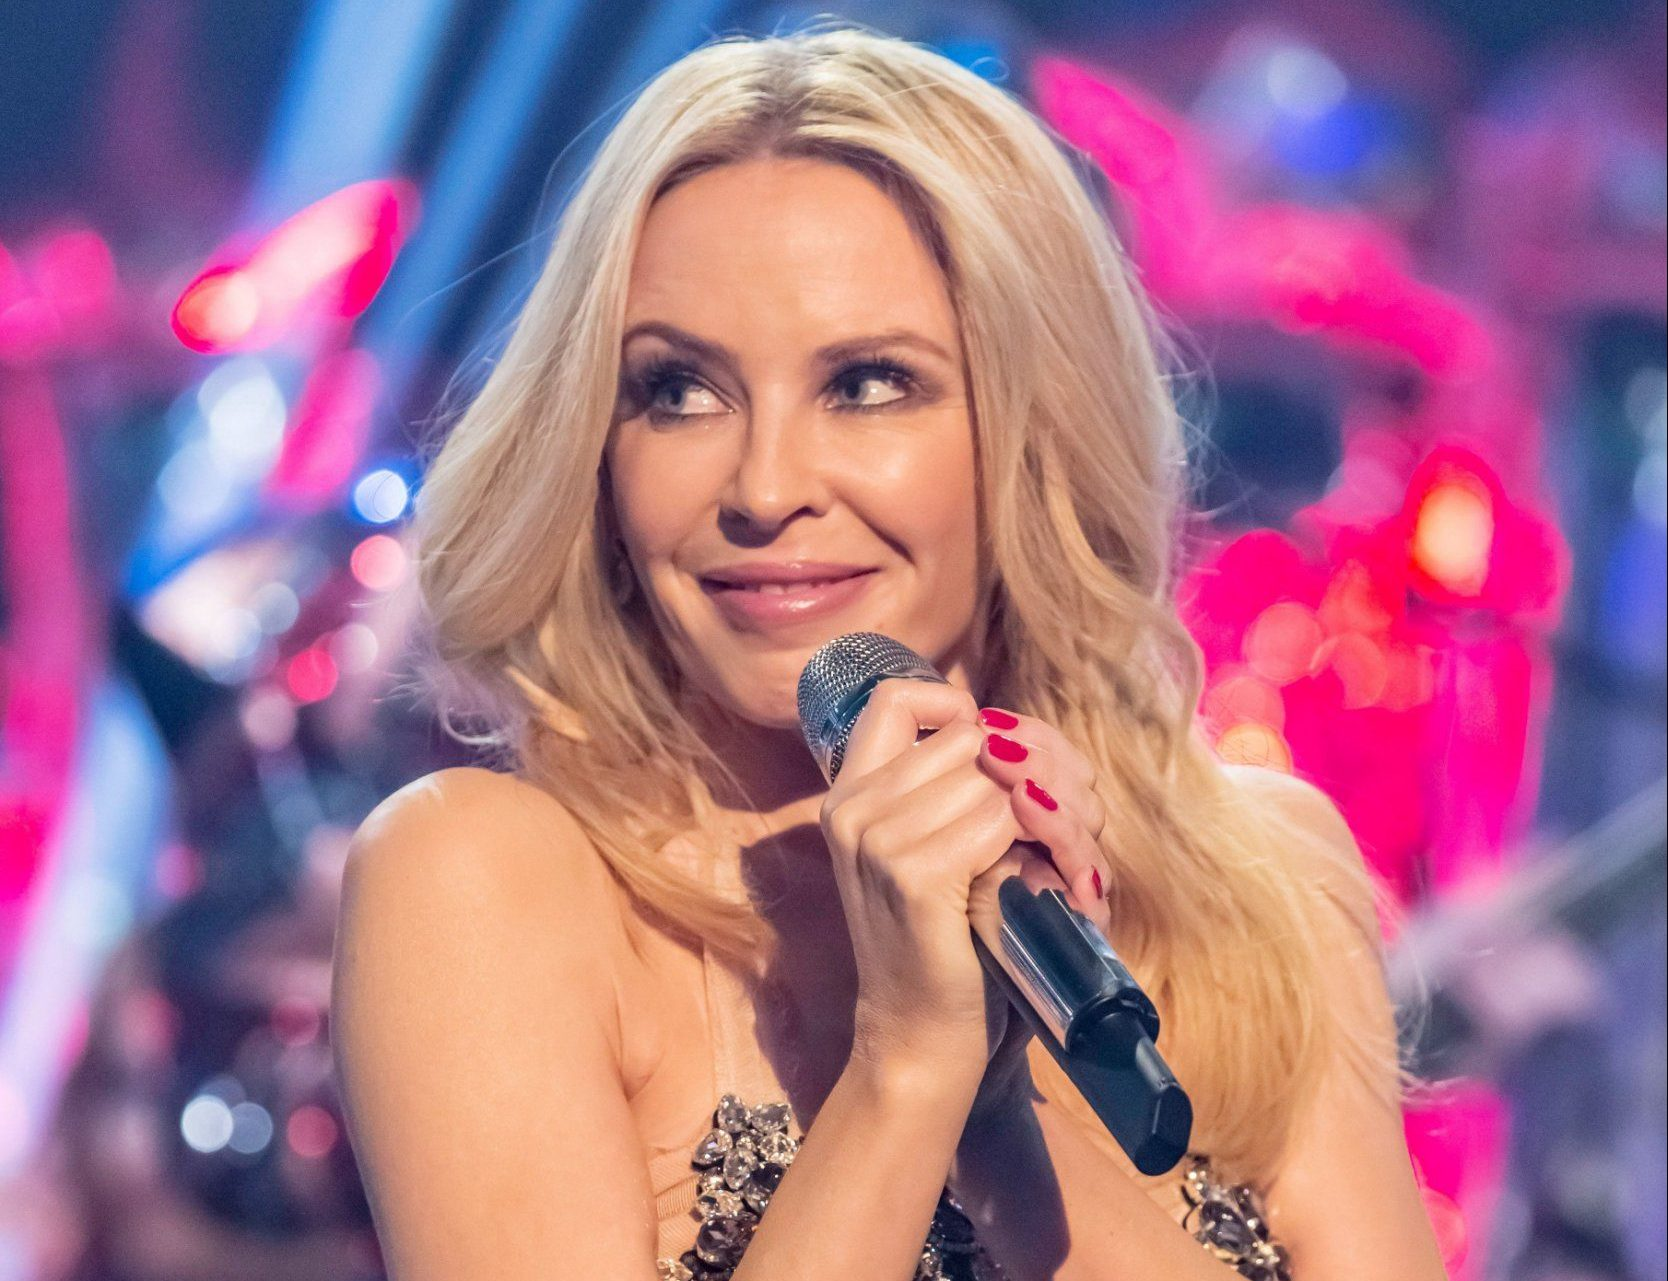 Kylie Minogue reveals she'll have to go through menopause for second time after cancer battle